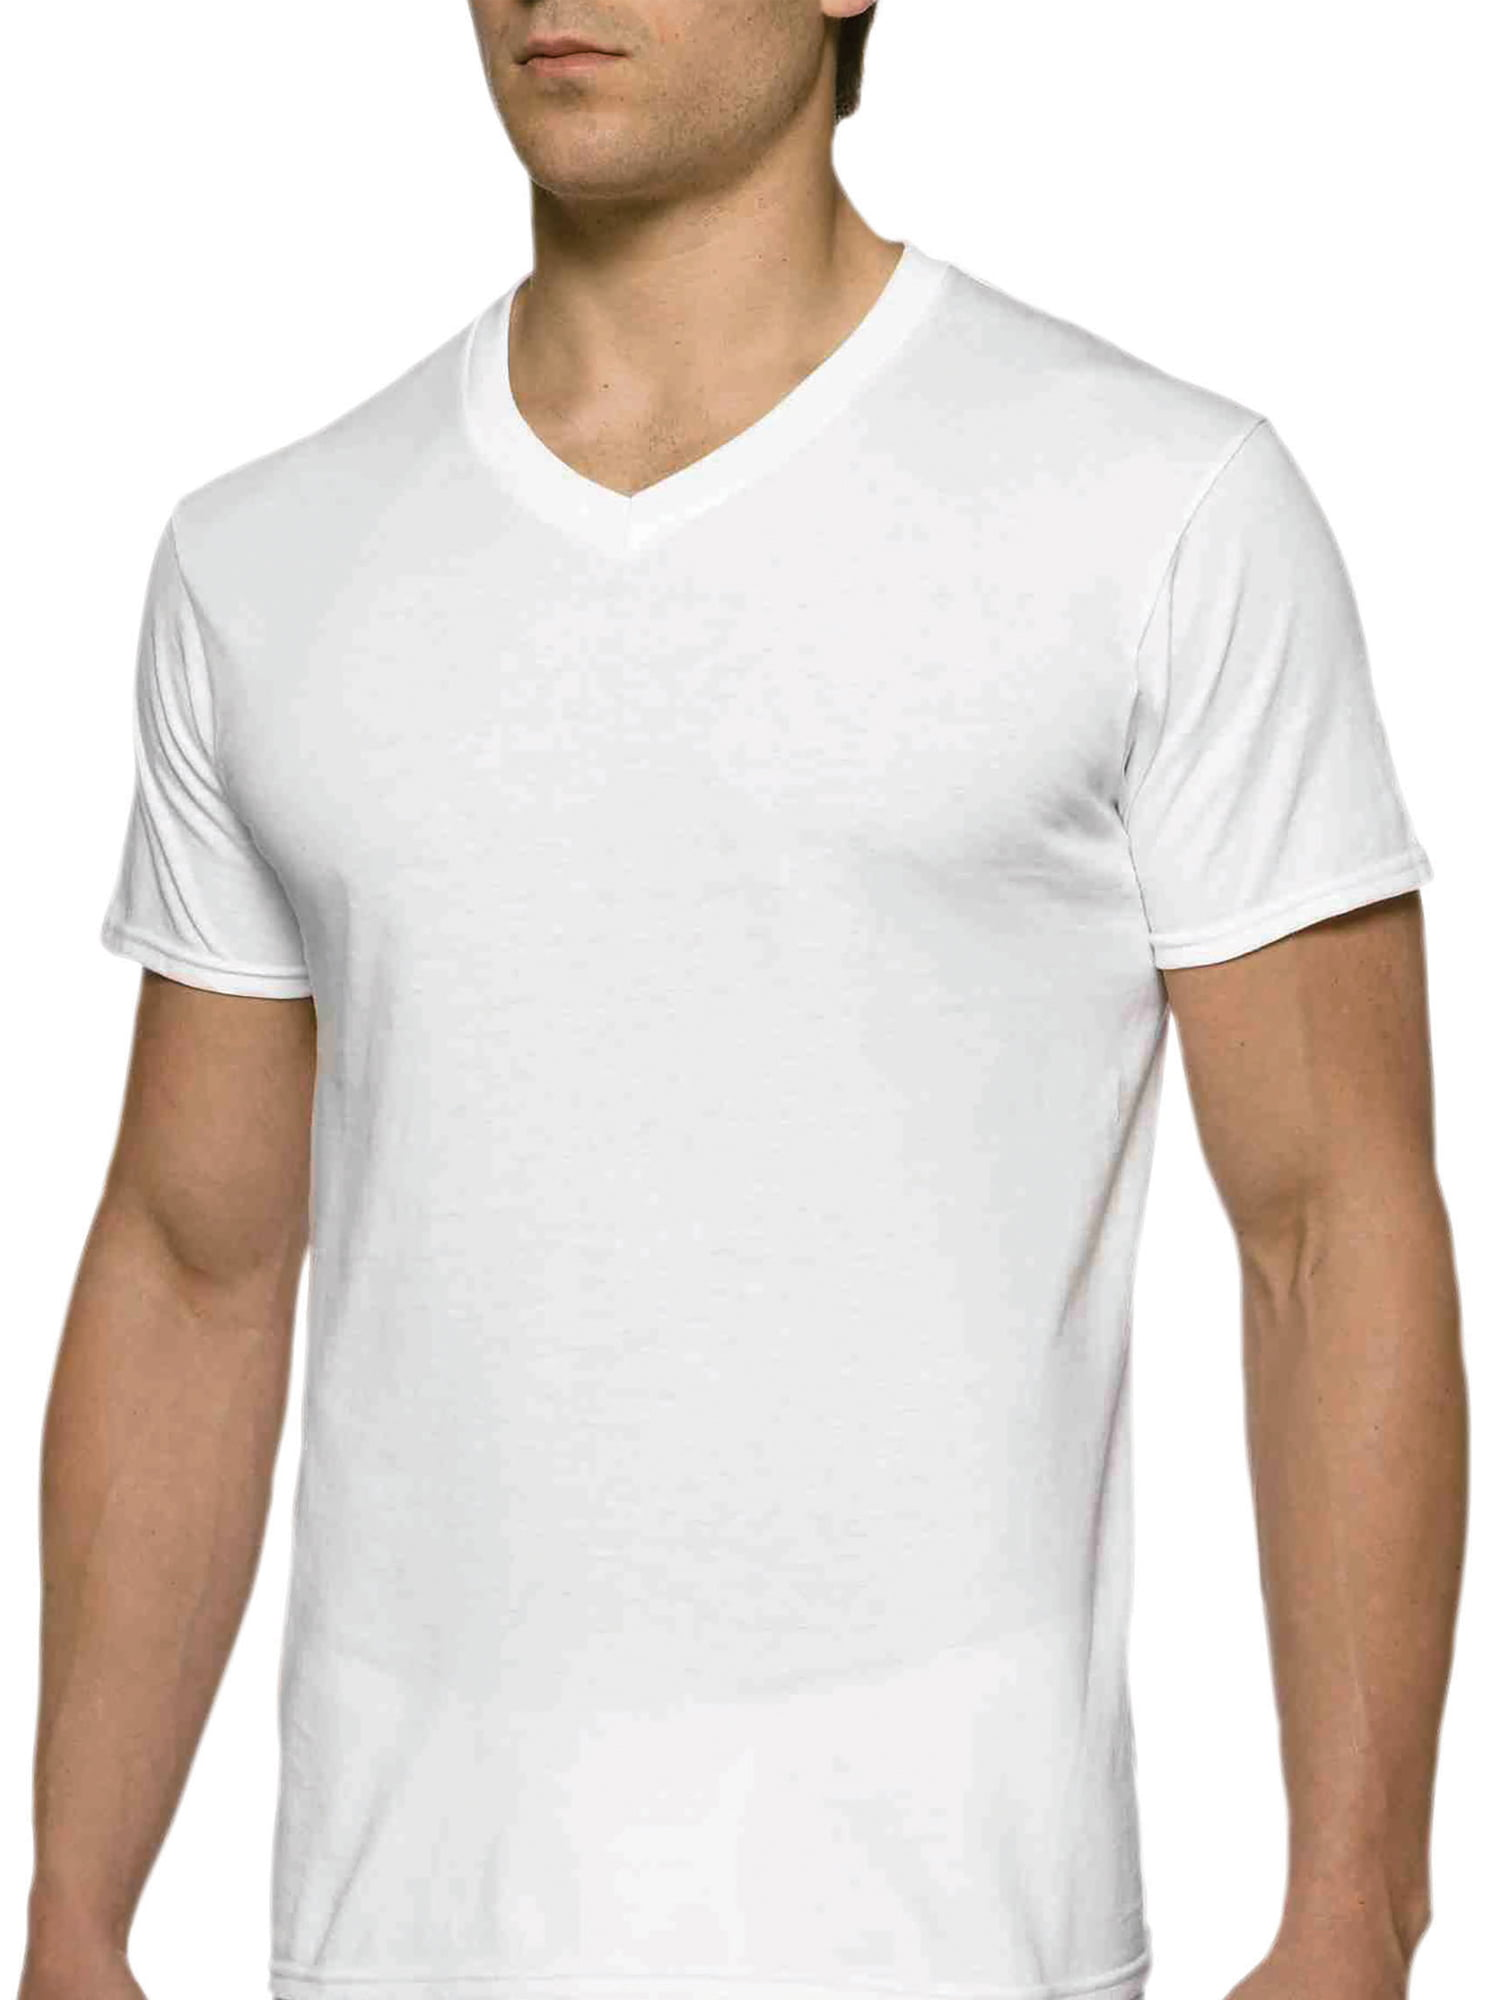 Mens Happy Earth Day White Round Neck T-Shirts,Summer Casual Short Sleeve Tee